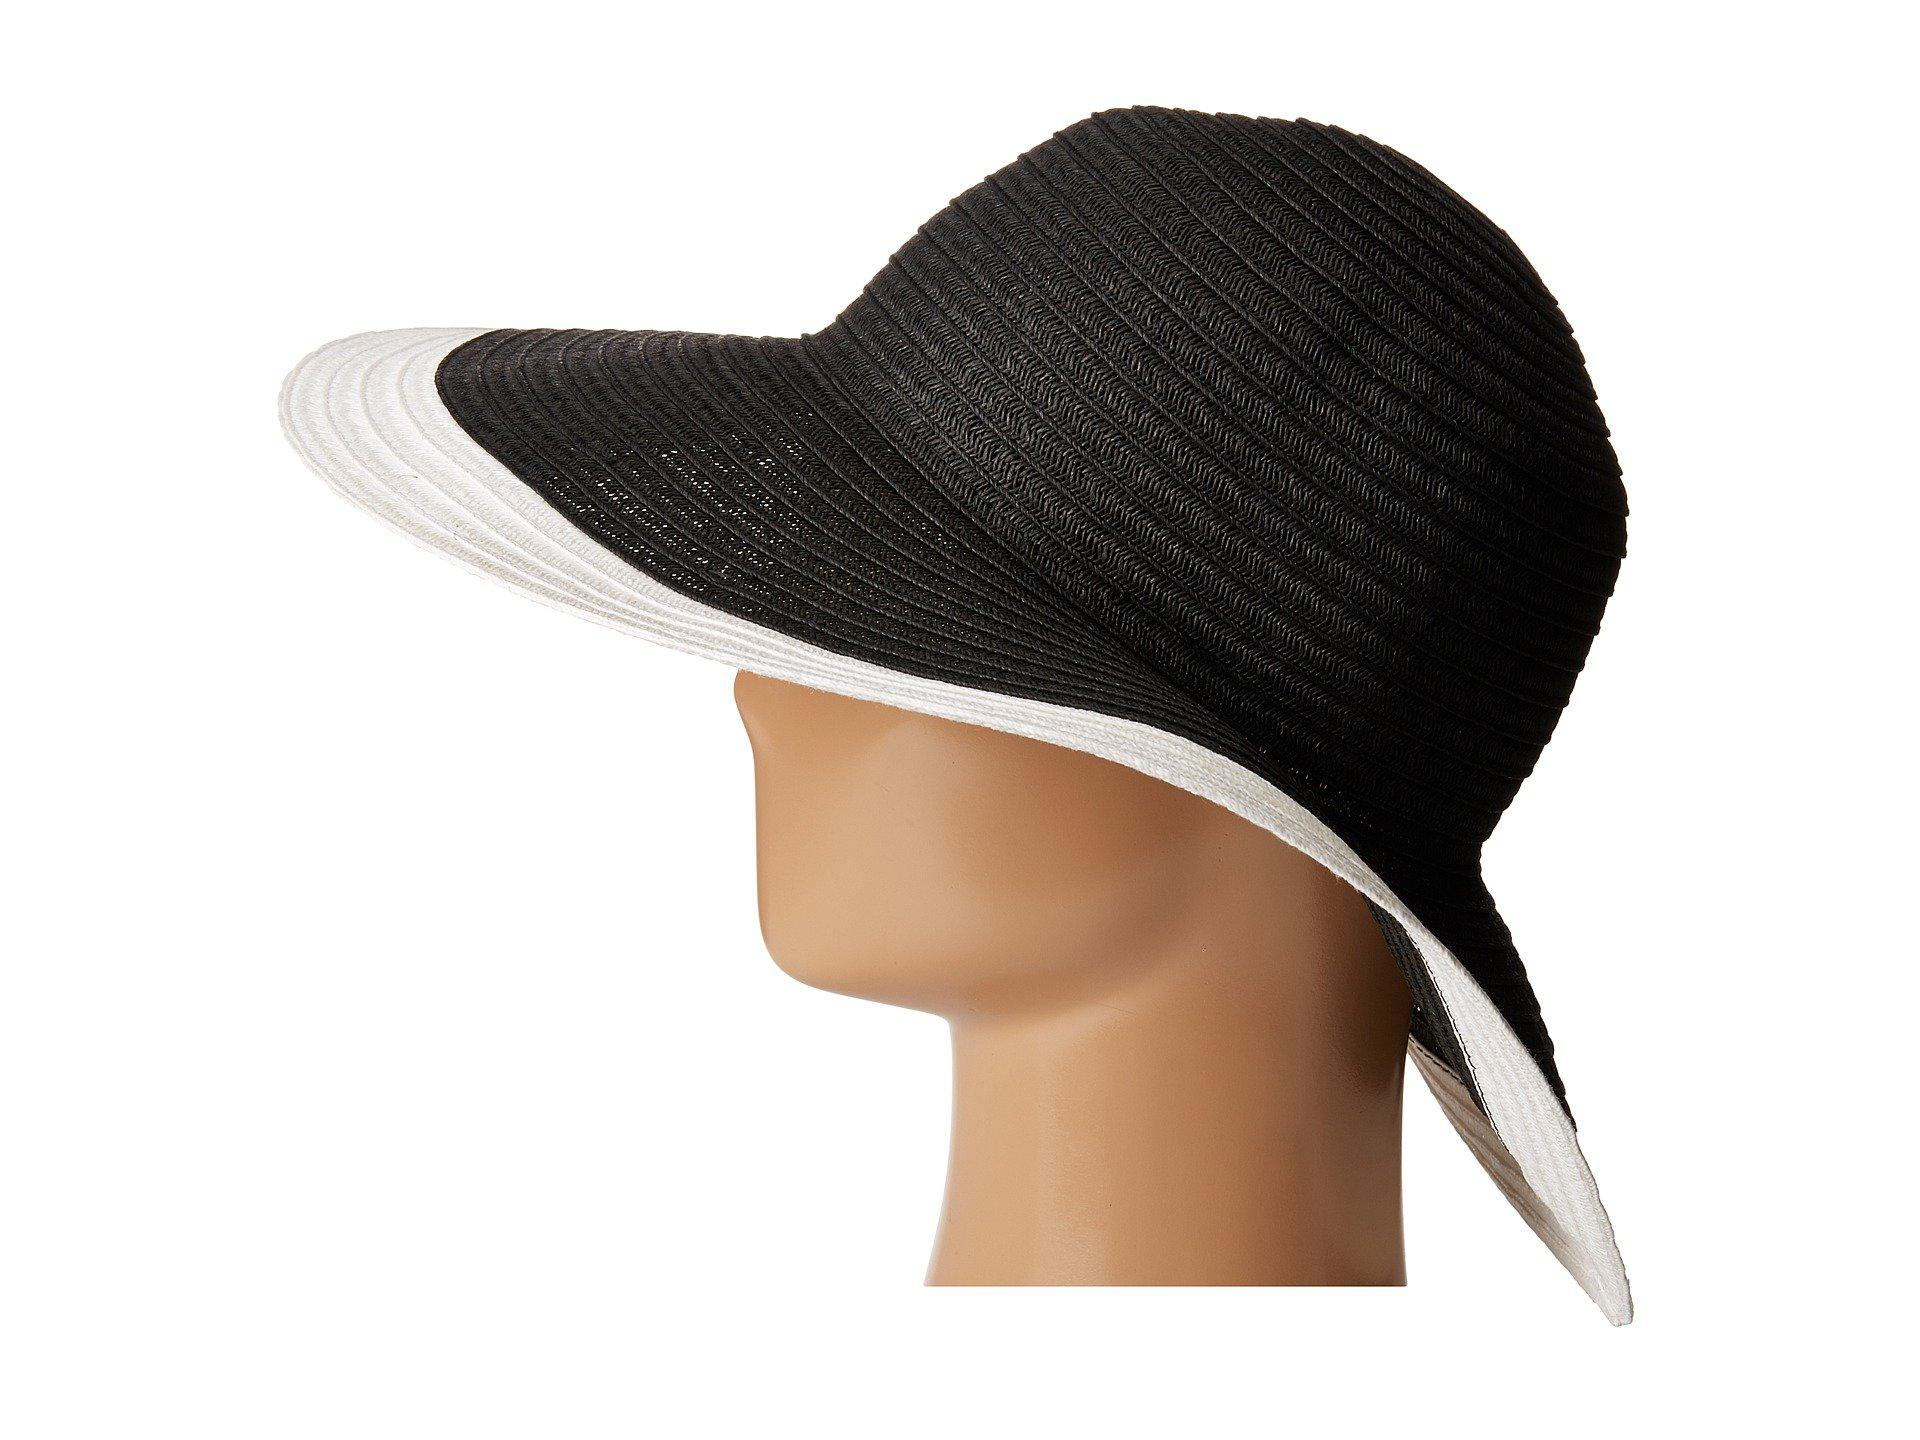 eca75bb4 San Diego Hat Company - Ubl6491 Four Buttons Floppy Color Block Hat (white/ black. View fullscreen